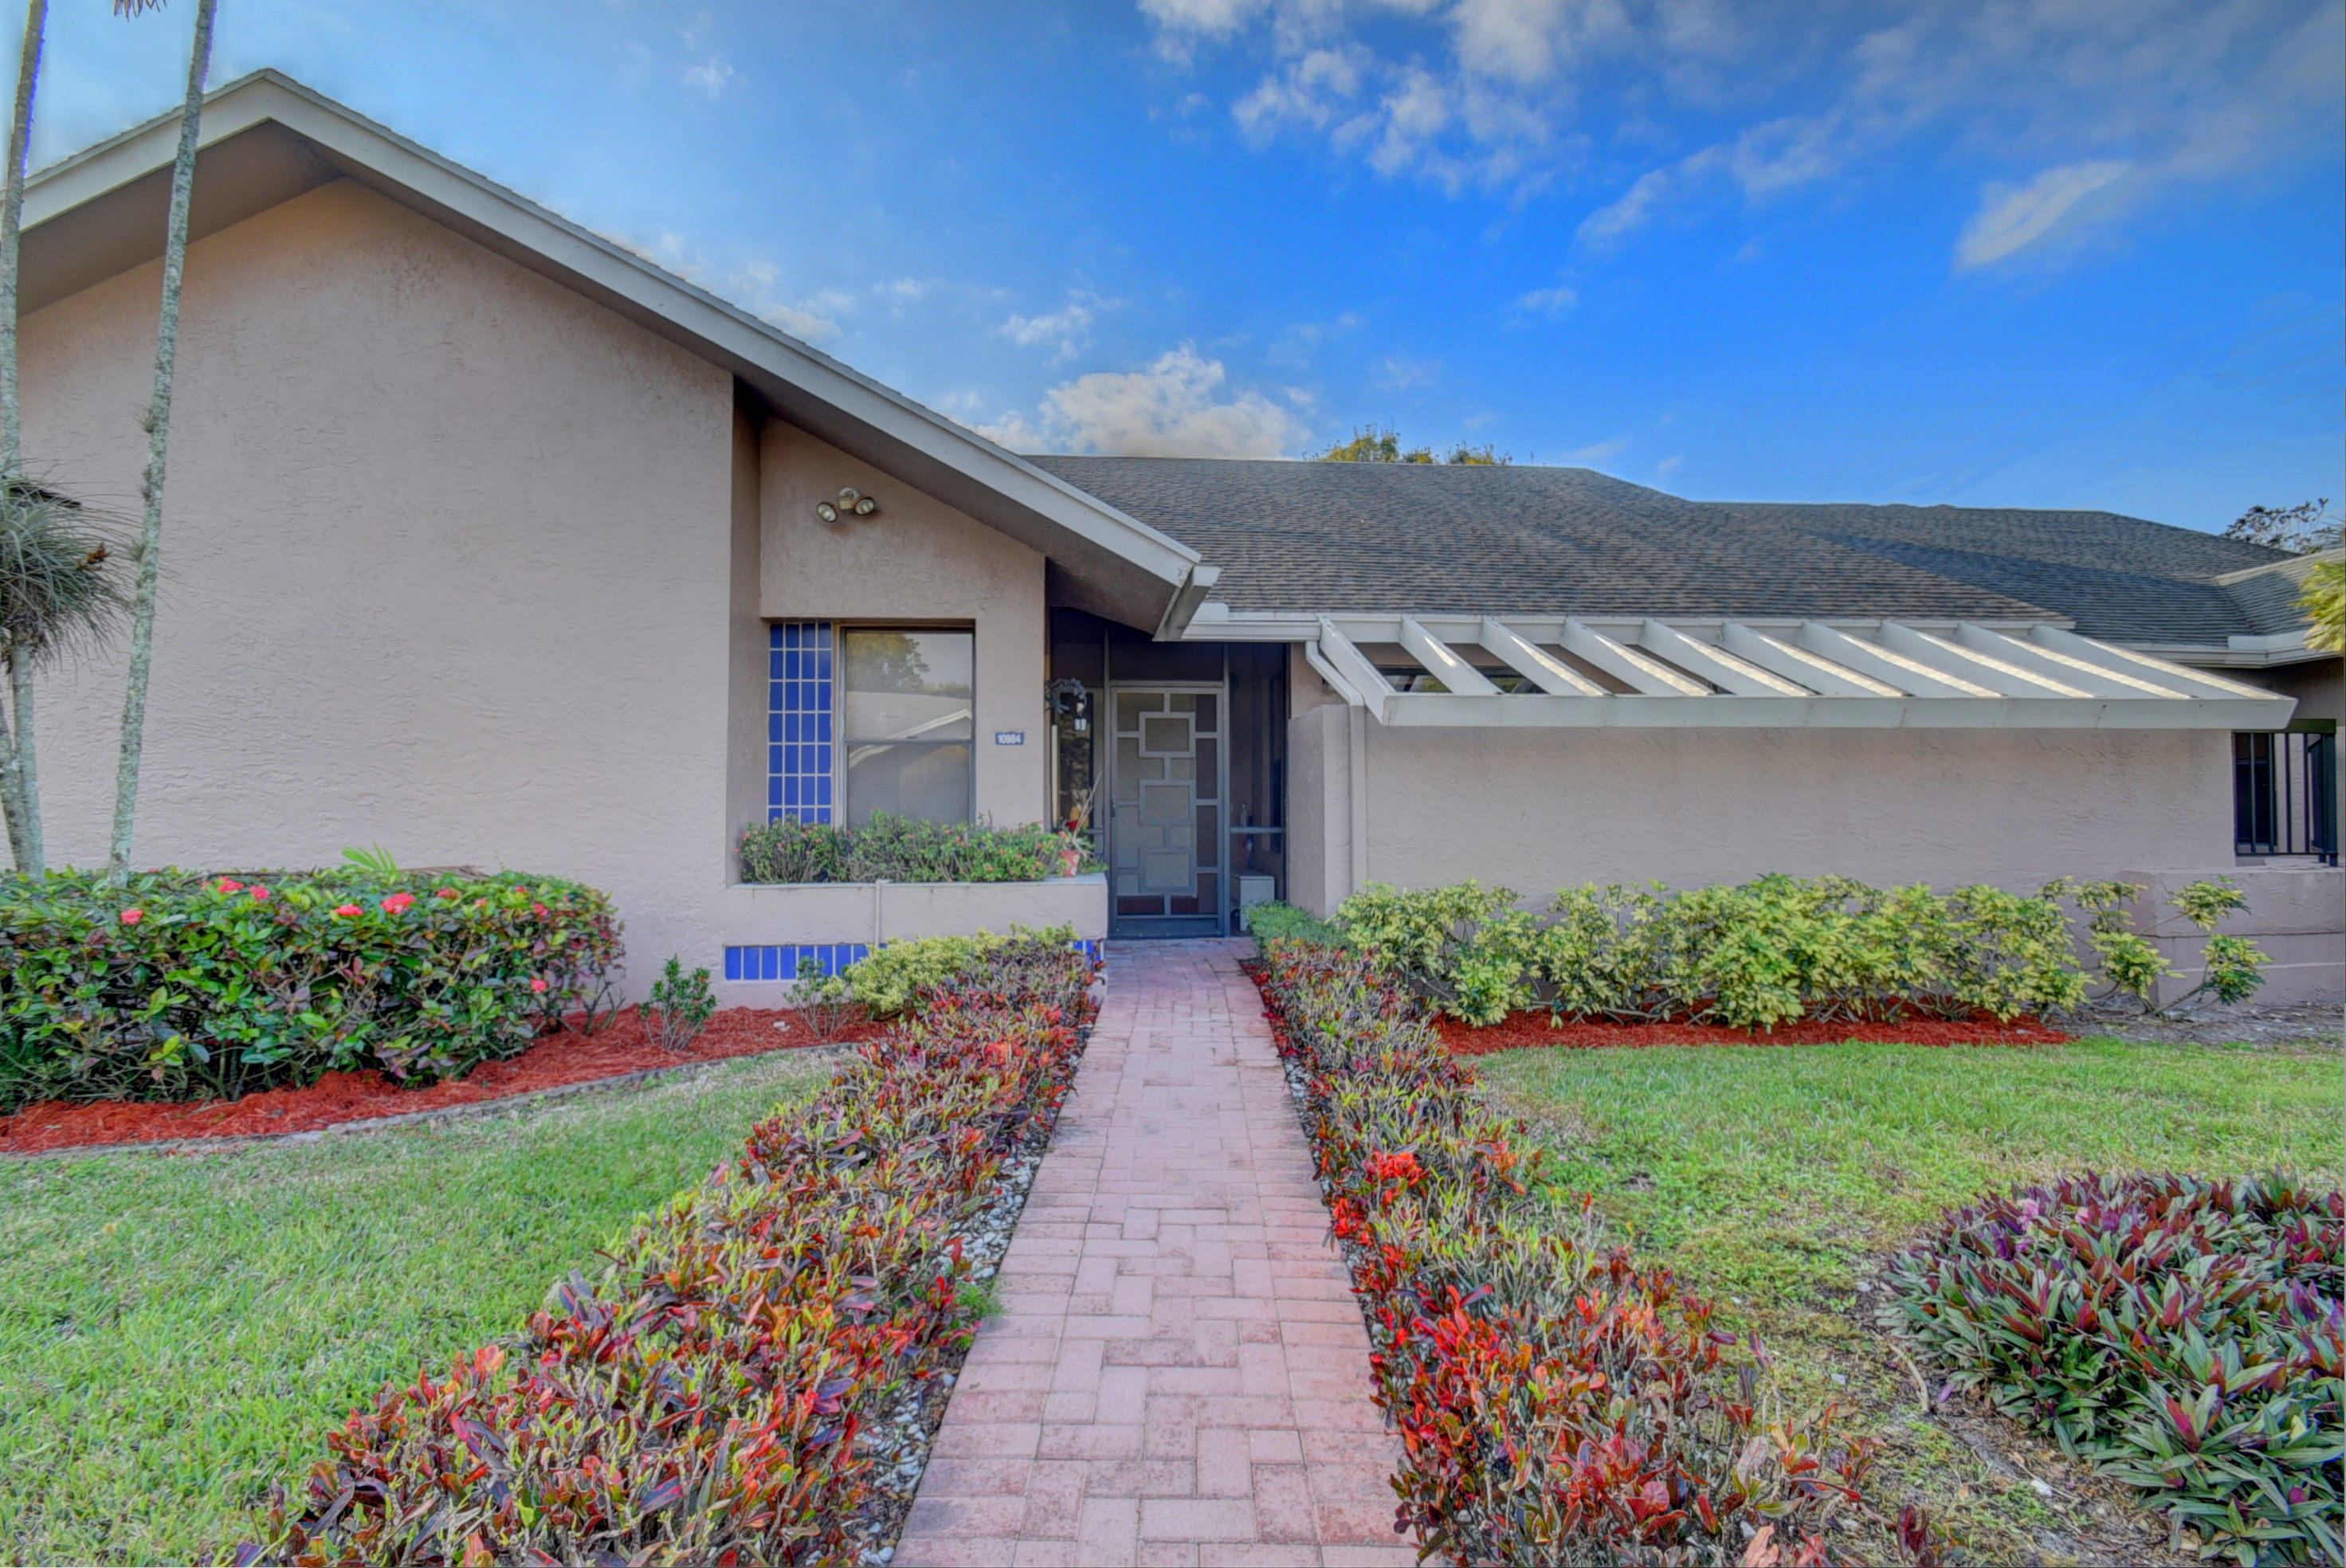 BEAUTIFULLY RENOVATED LAKEFRONT VILLA!  This amazing home is waiting for you! Move-in ready with gorgeous kitchen & baths! This lovely villa on a cul-de-sac features an eat-in-kitchen w/spacious breakfast area, large living room/dining room, & FLORIDA ROOM WITH A/C. The 14x13 master bedroom suite offers a large walk-in closet & master bath. There is a 12x11 2nd bedroom & bath, & interior laundry room. A/C - 2005. Roof - 2005. Vaulted ceilings, lovely front patio, & 2 car parking right in front. Exterior painted in 2016. Active clubhouse, pool, tennis, sauna, fitness room, BBQ area, pier. Assoc says 55+ community. 2 pets welcome up to 20 lbs each. HOA covers exterior paint, lawn, cable, clubhouse, gate. Lovely West Boca area. Available unfurnished, furnished (negotiable), or turnkey.